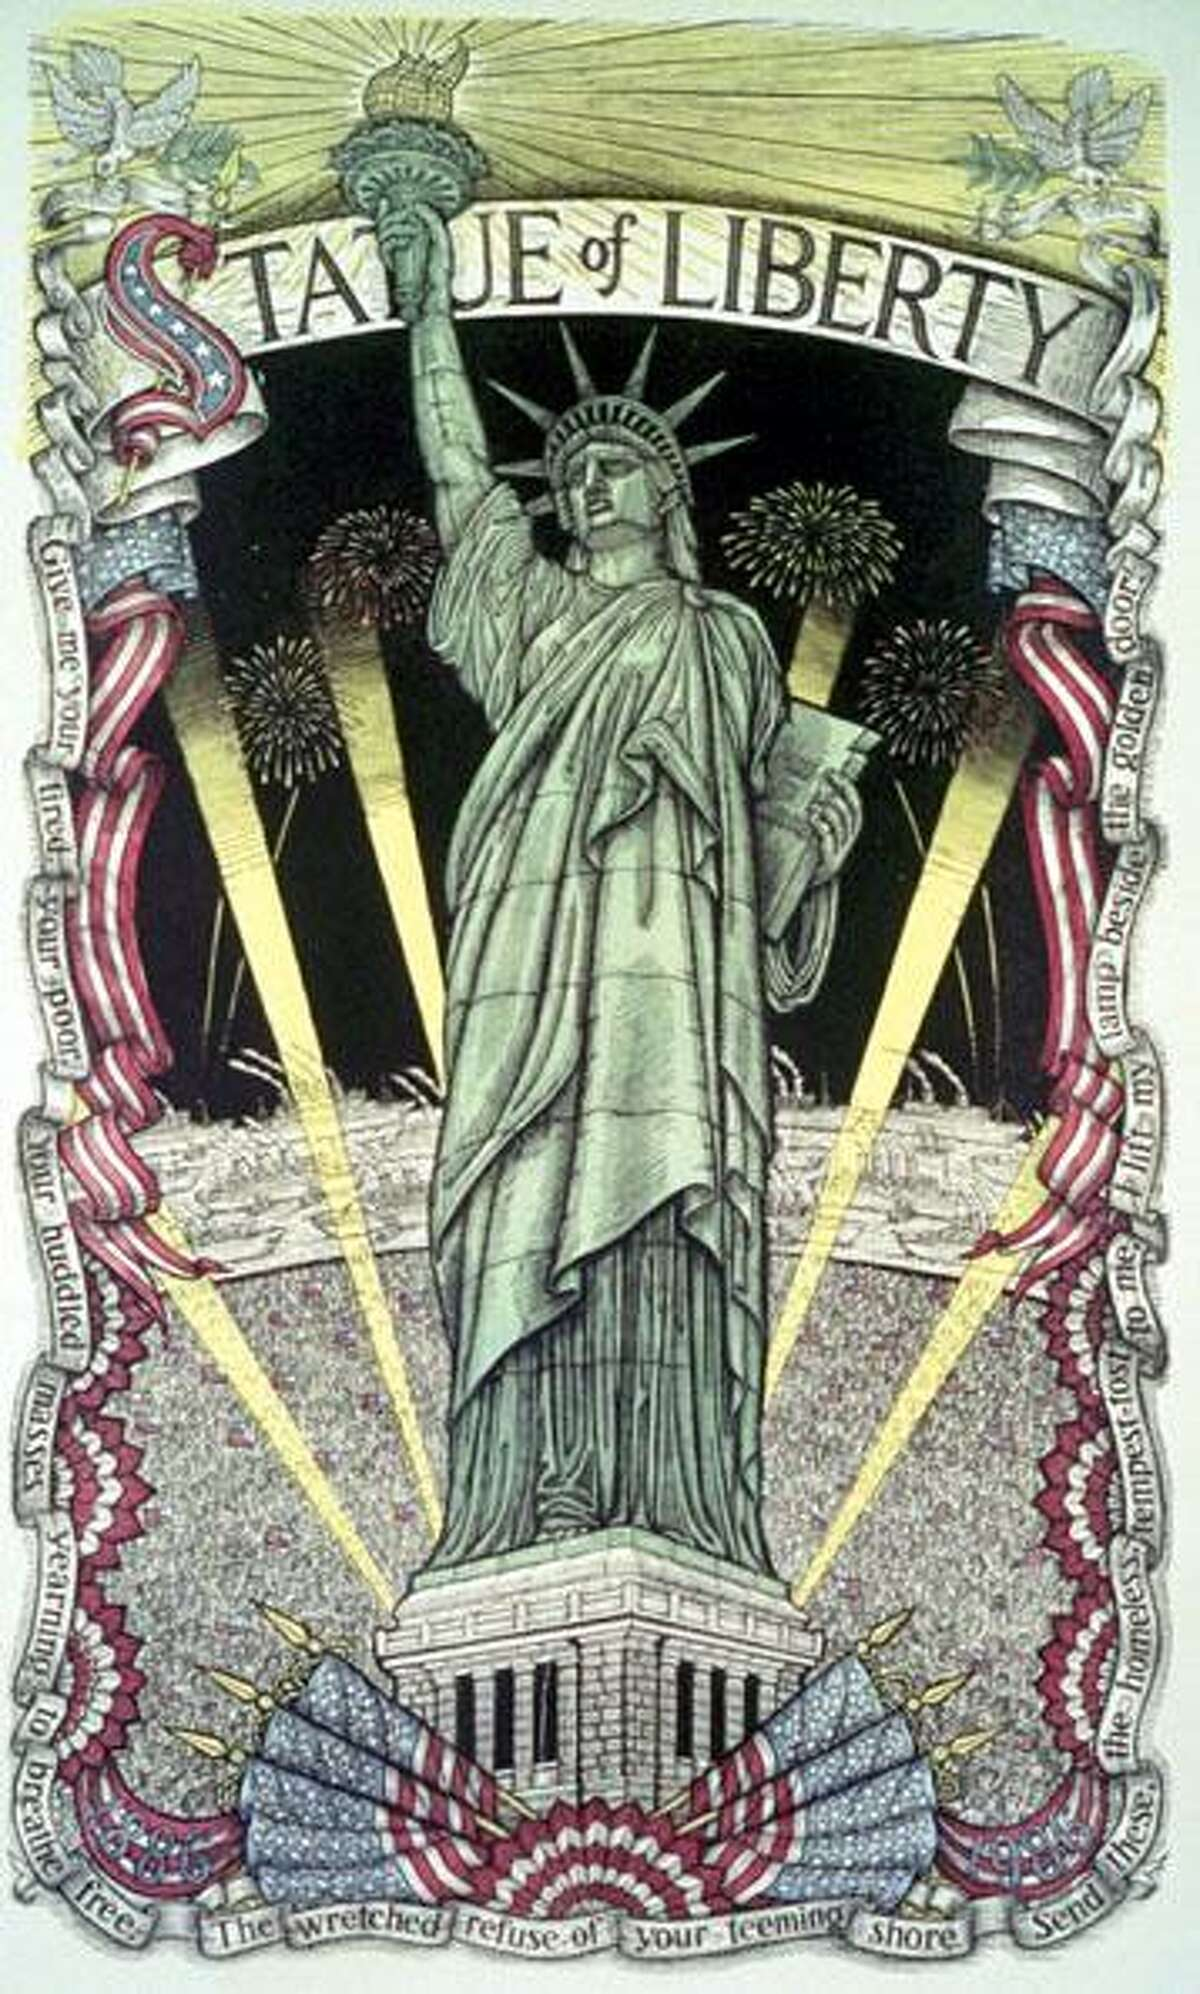 A woodcut of the Statue of Liberty done by Redding artist James Grashow.